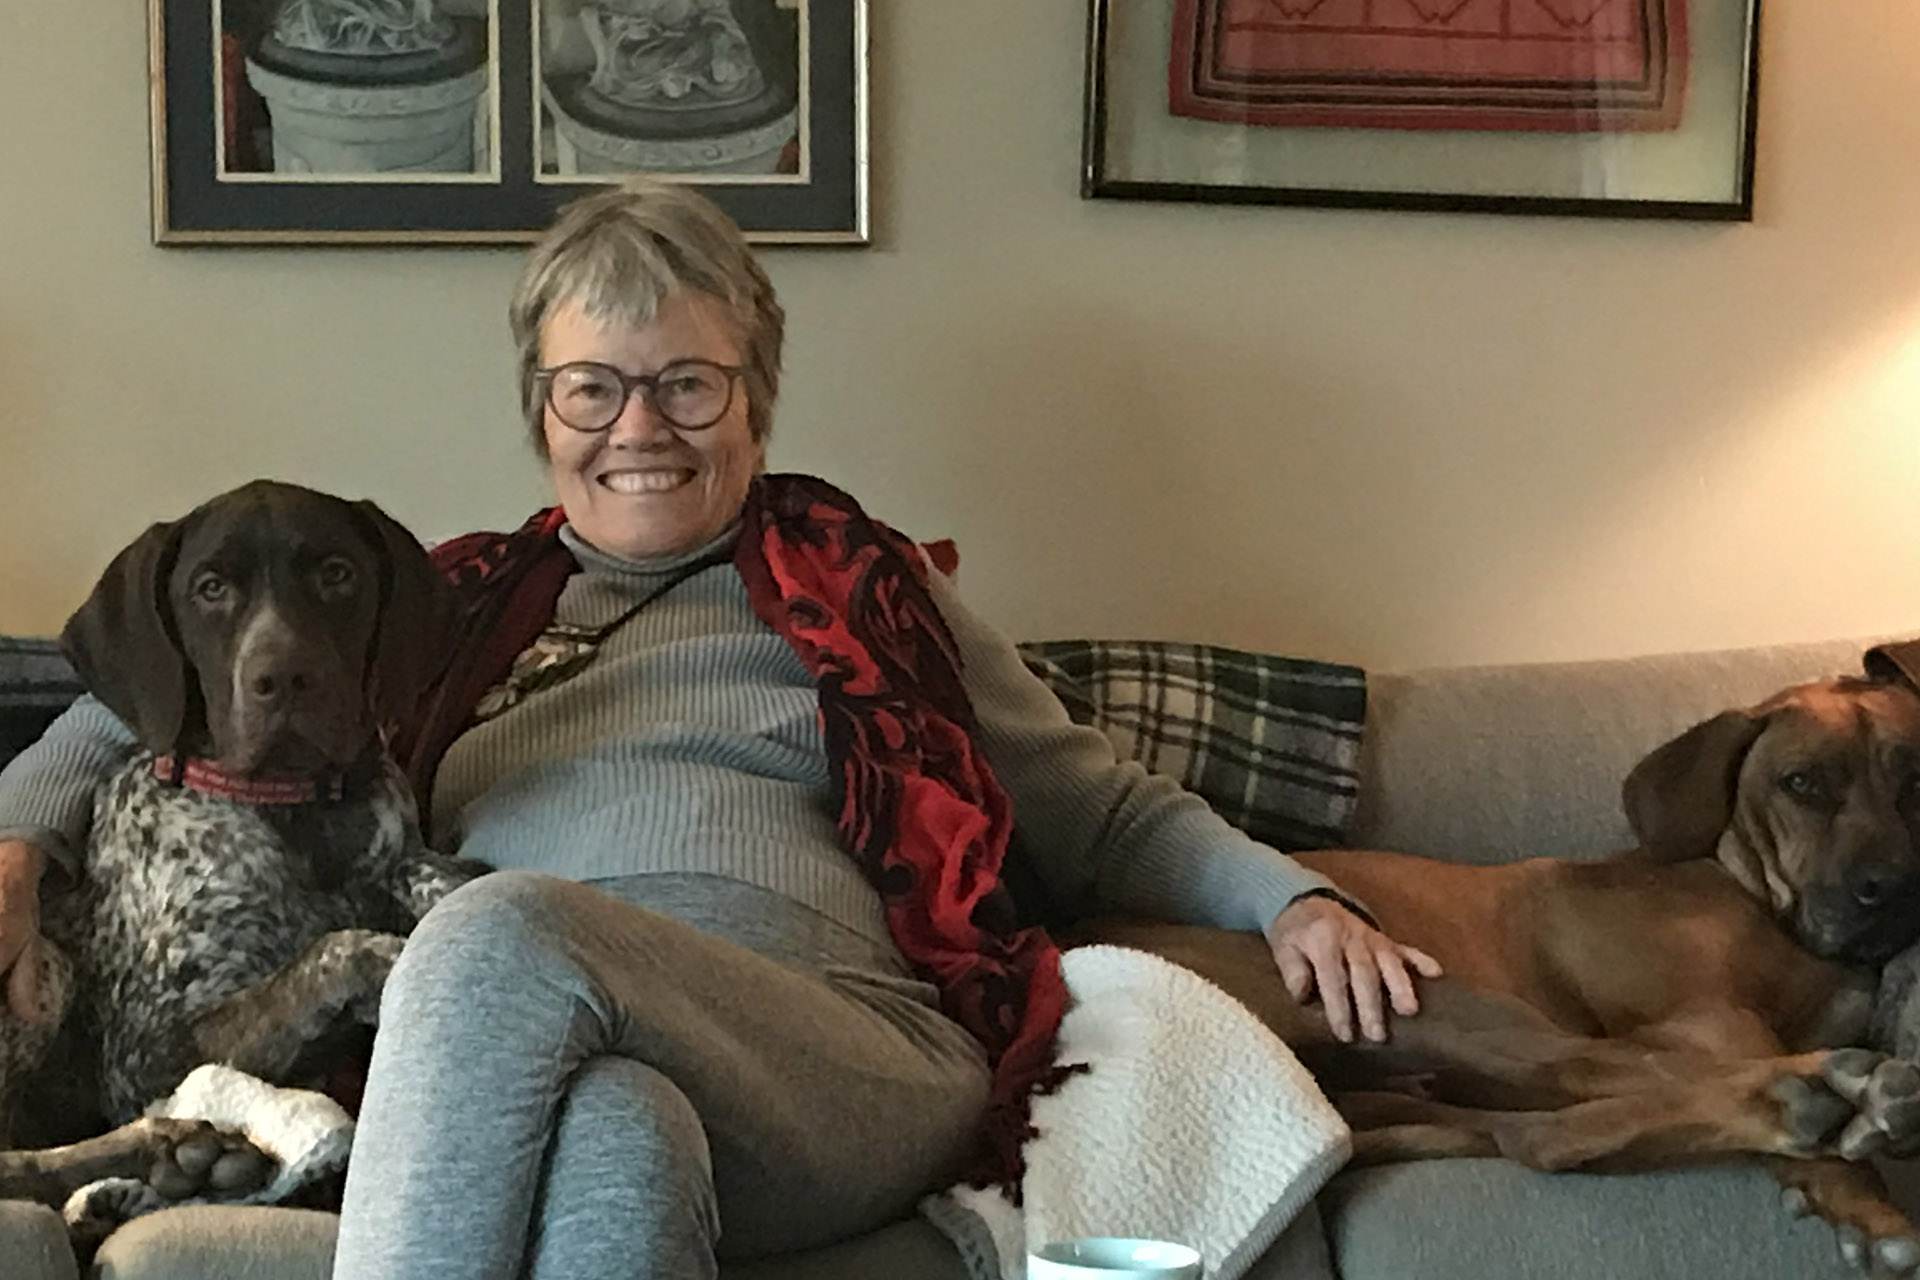 Older woman sitting on a modern couch with two dogs